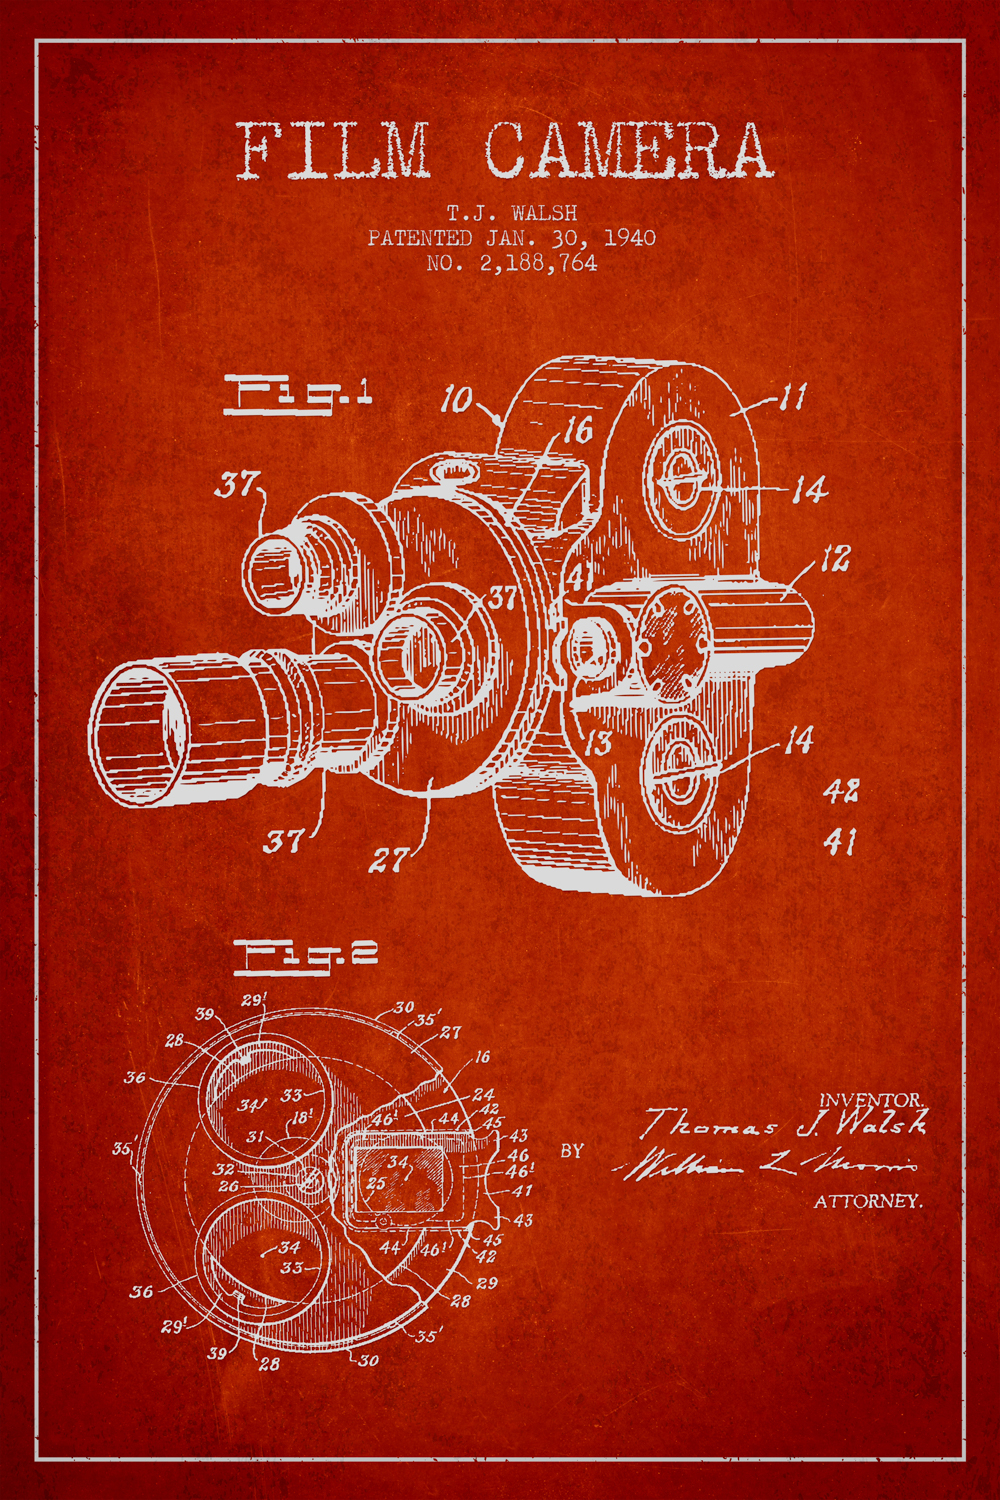 Red blueprint of a film camera with white text